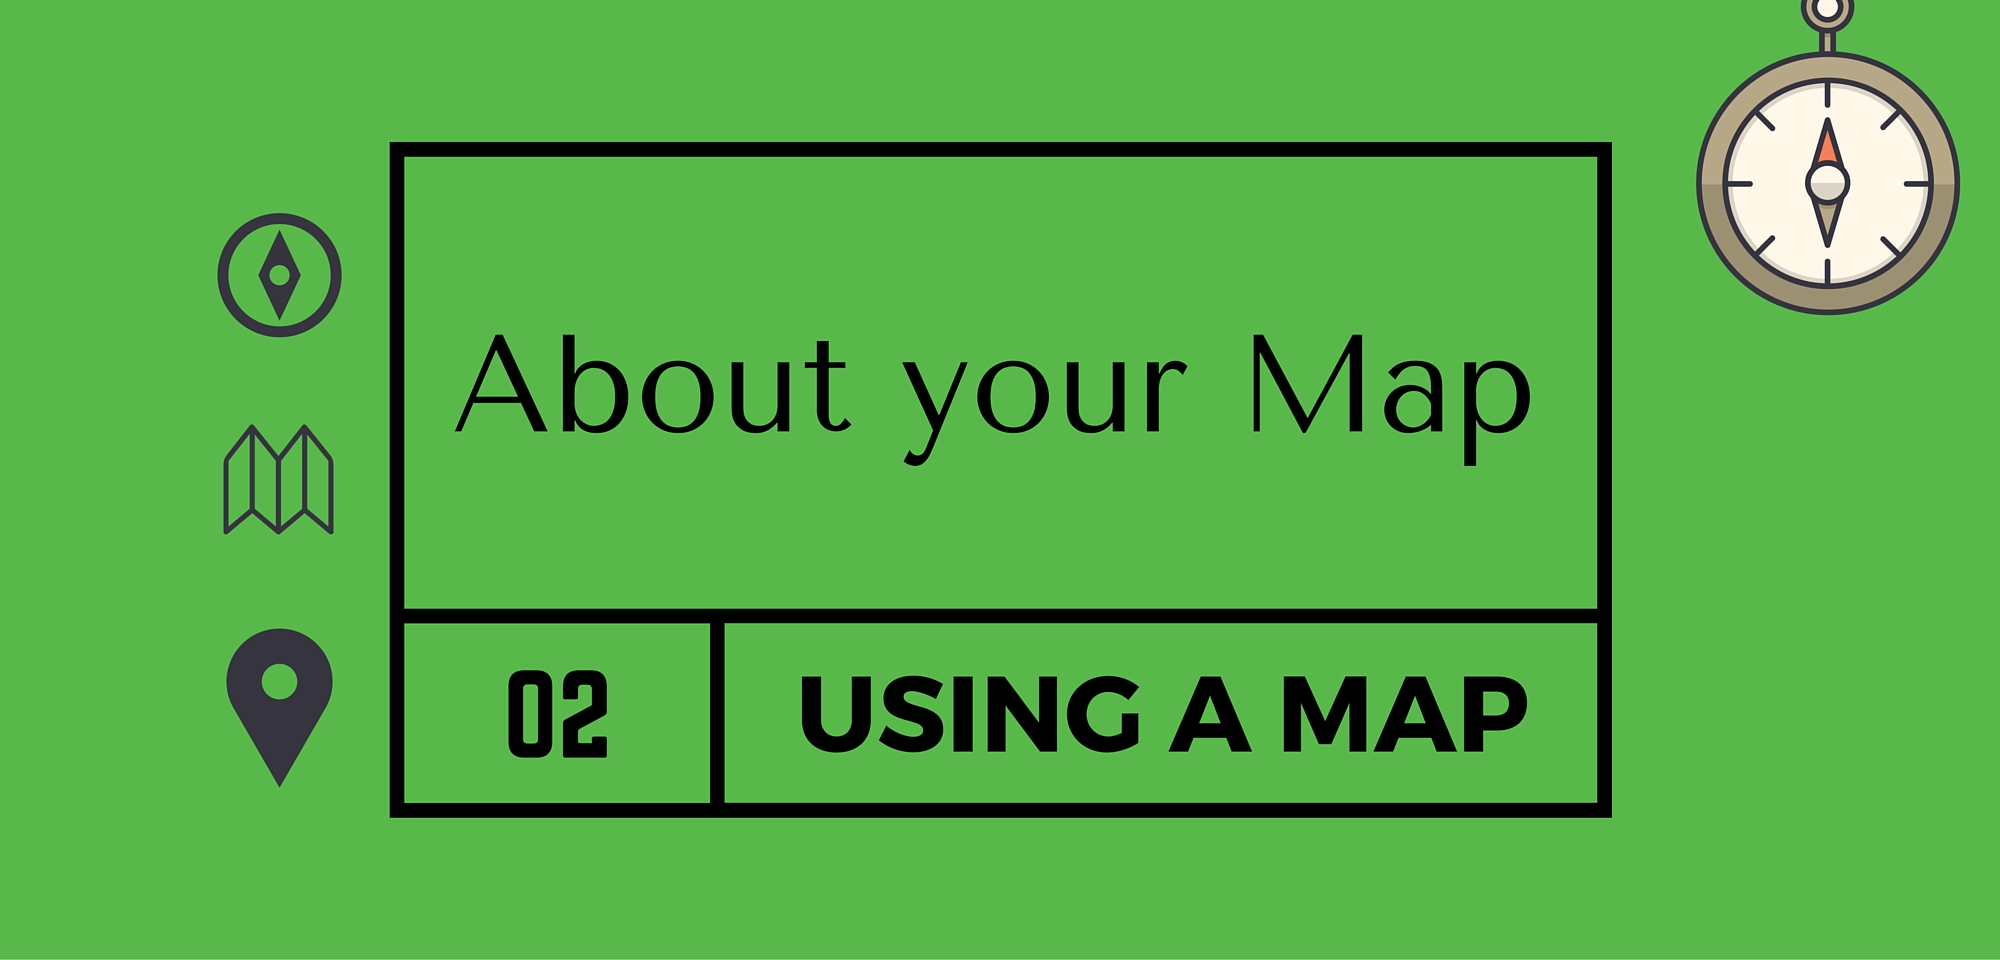 Using A Map